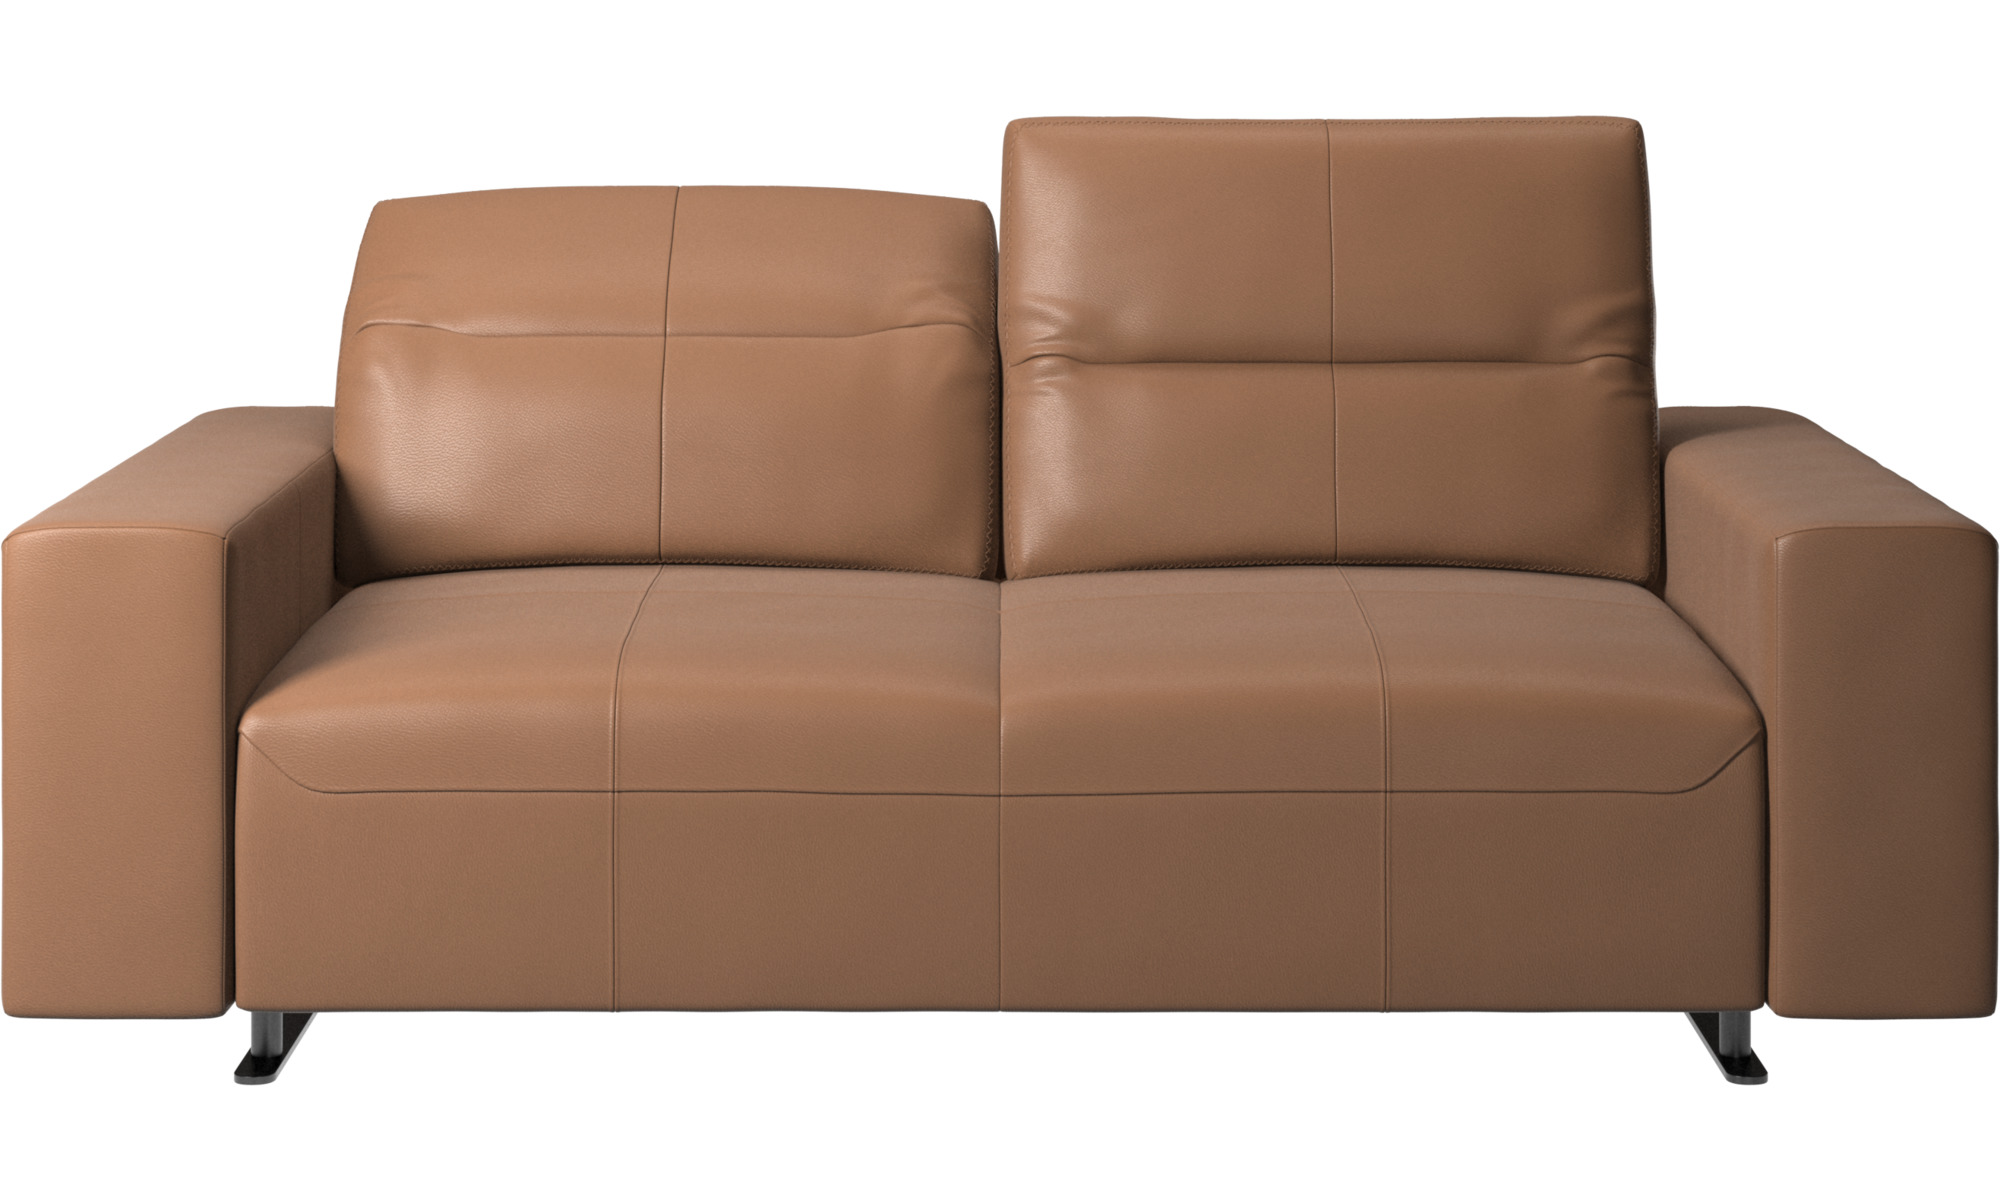 NEW IN PACKAGE Sure fit Stretch Leather 2-Piece Loveseat Slipcover Brown